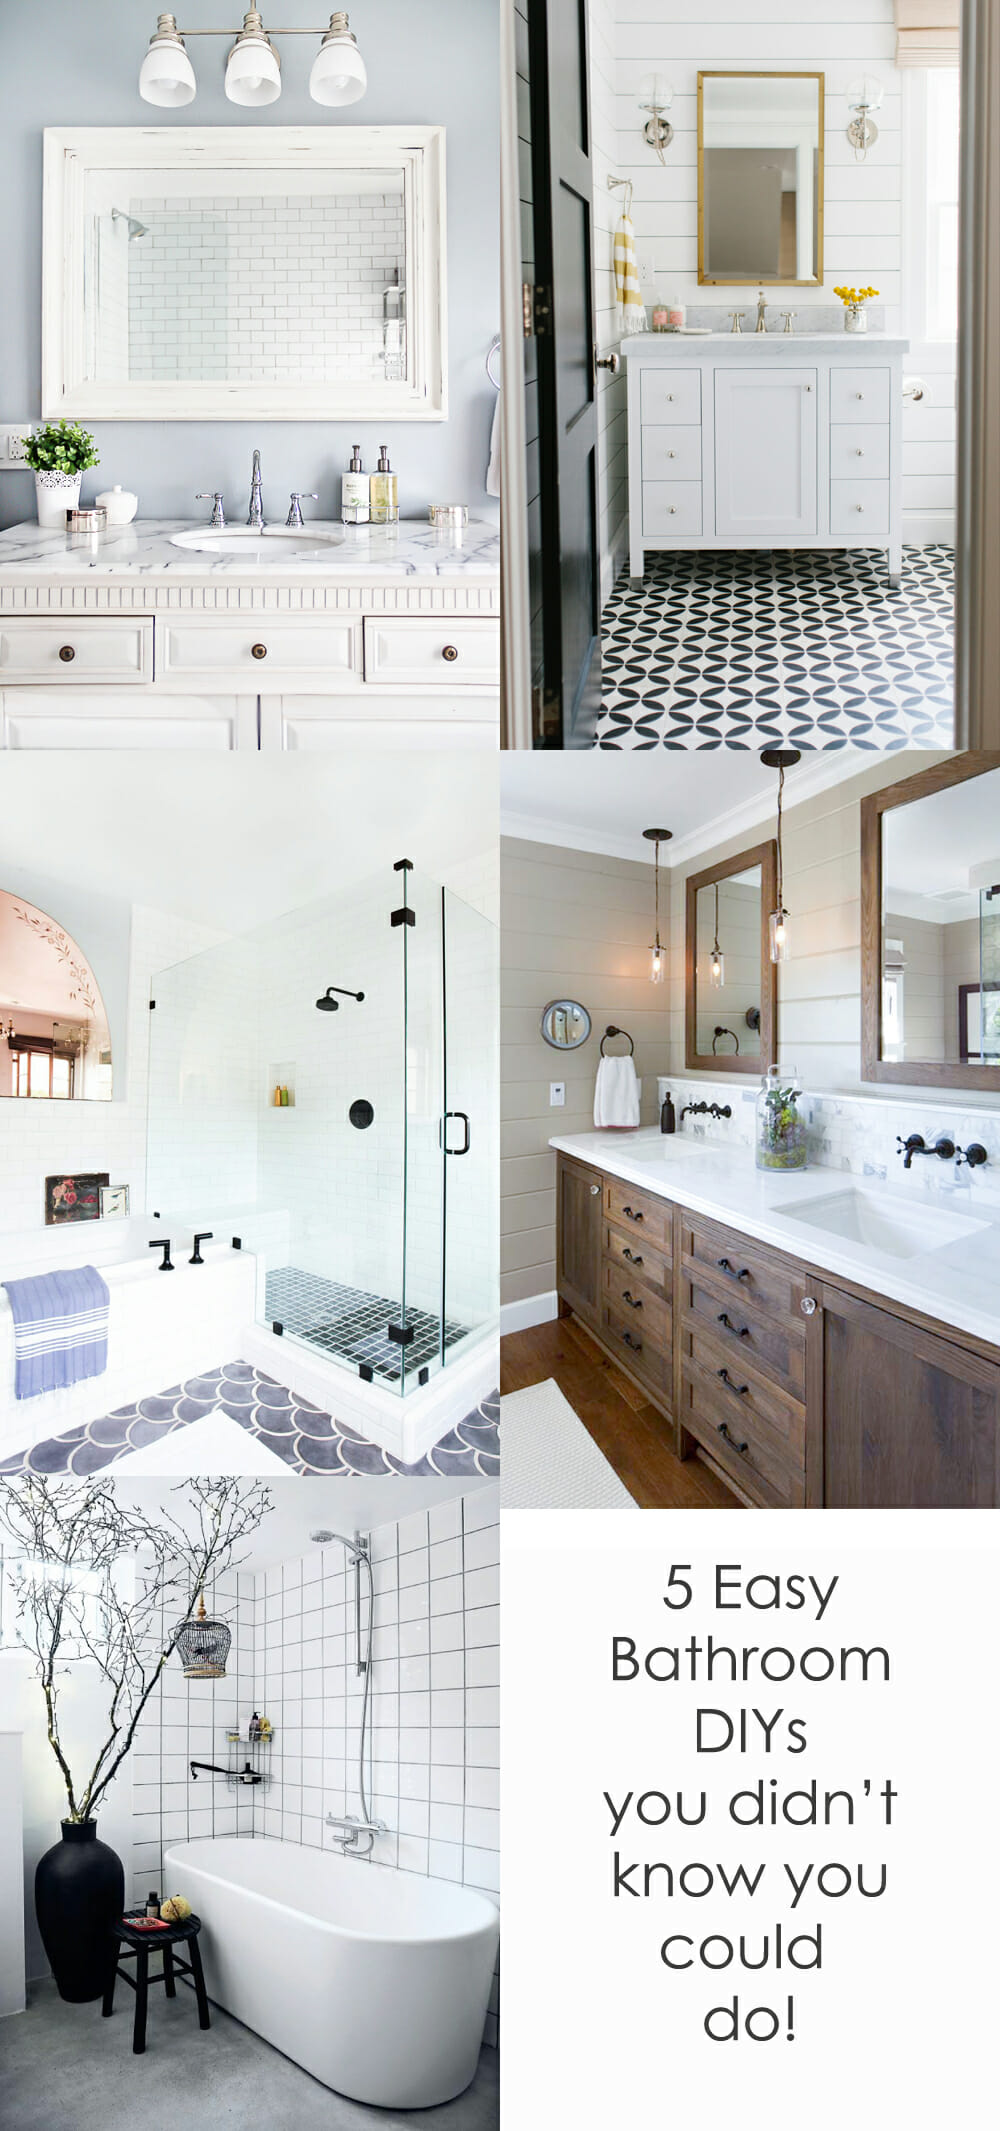 easy diy bathroom upgrades that will surprise you modernize